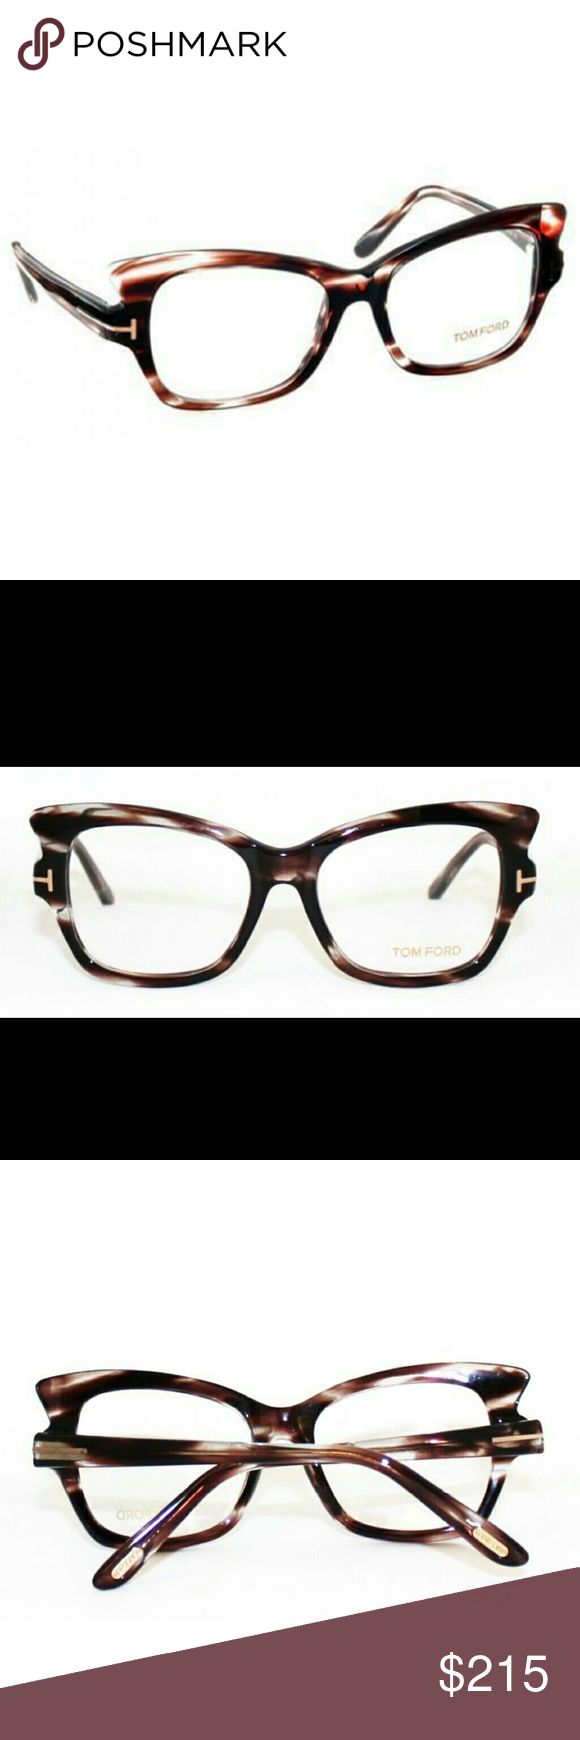 Tom Ford Eyeglasses New And Authentic Tom Ford Eyeglasses